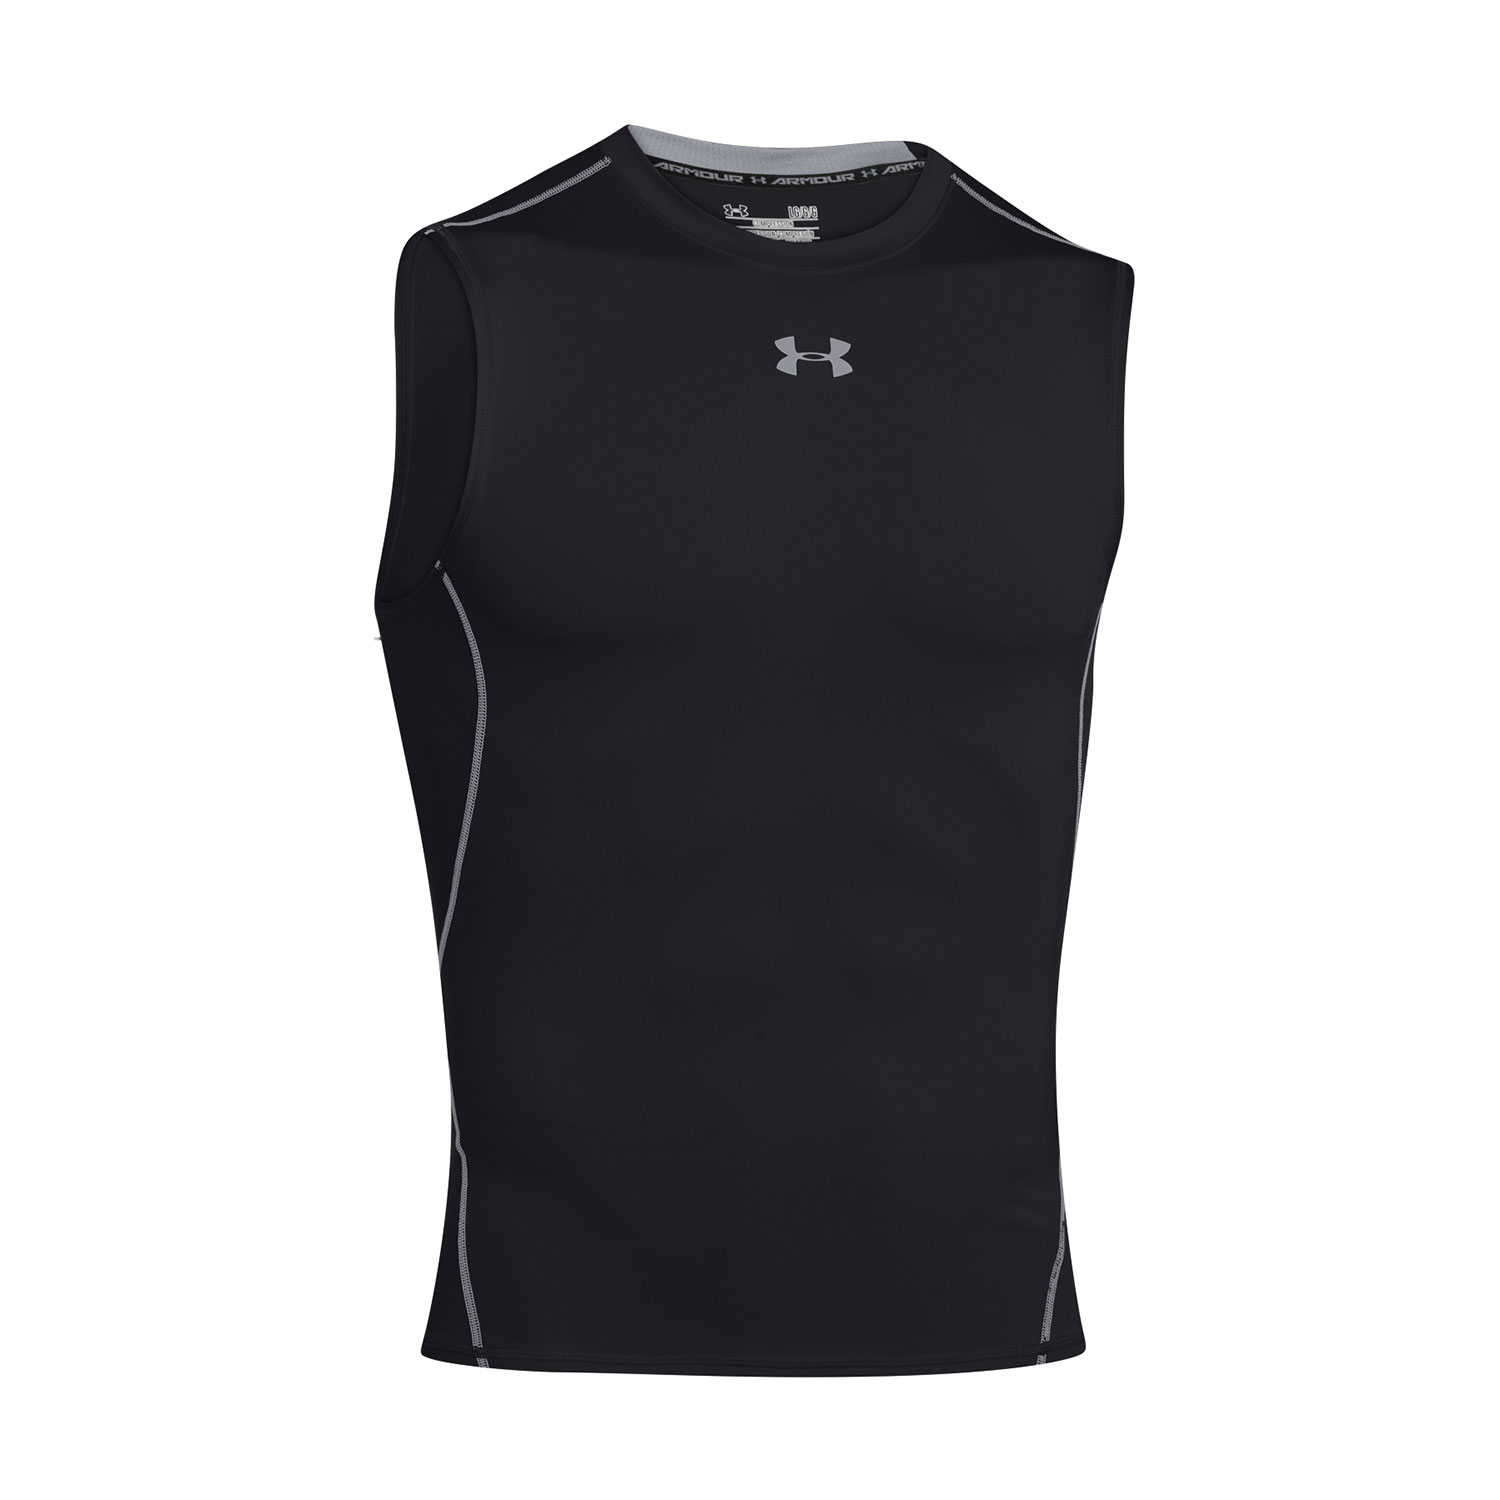 Under Armour Men's HeatGear Compression Sleeveless T-Shirt